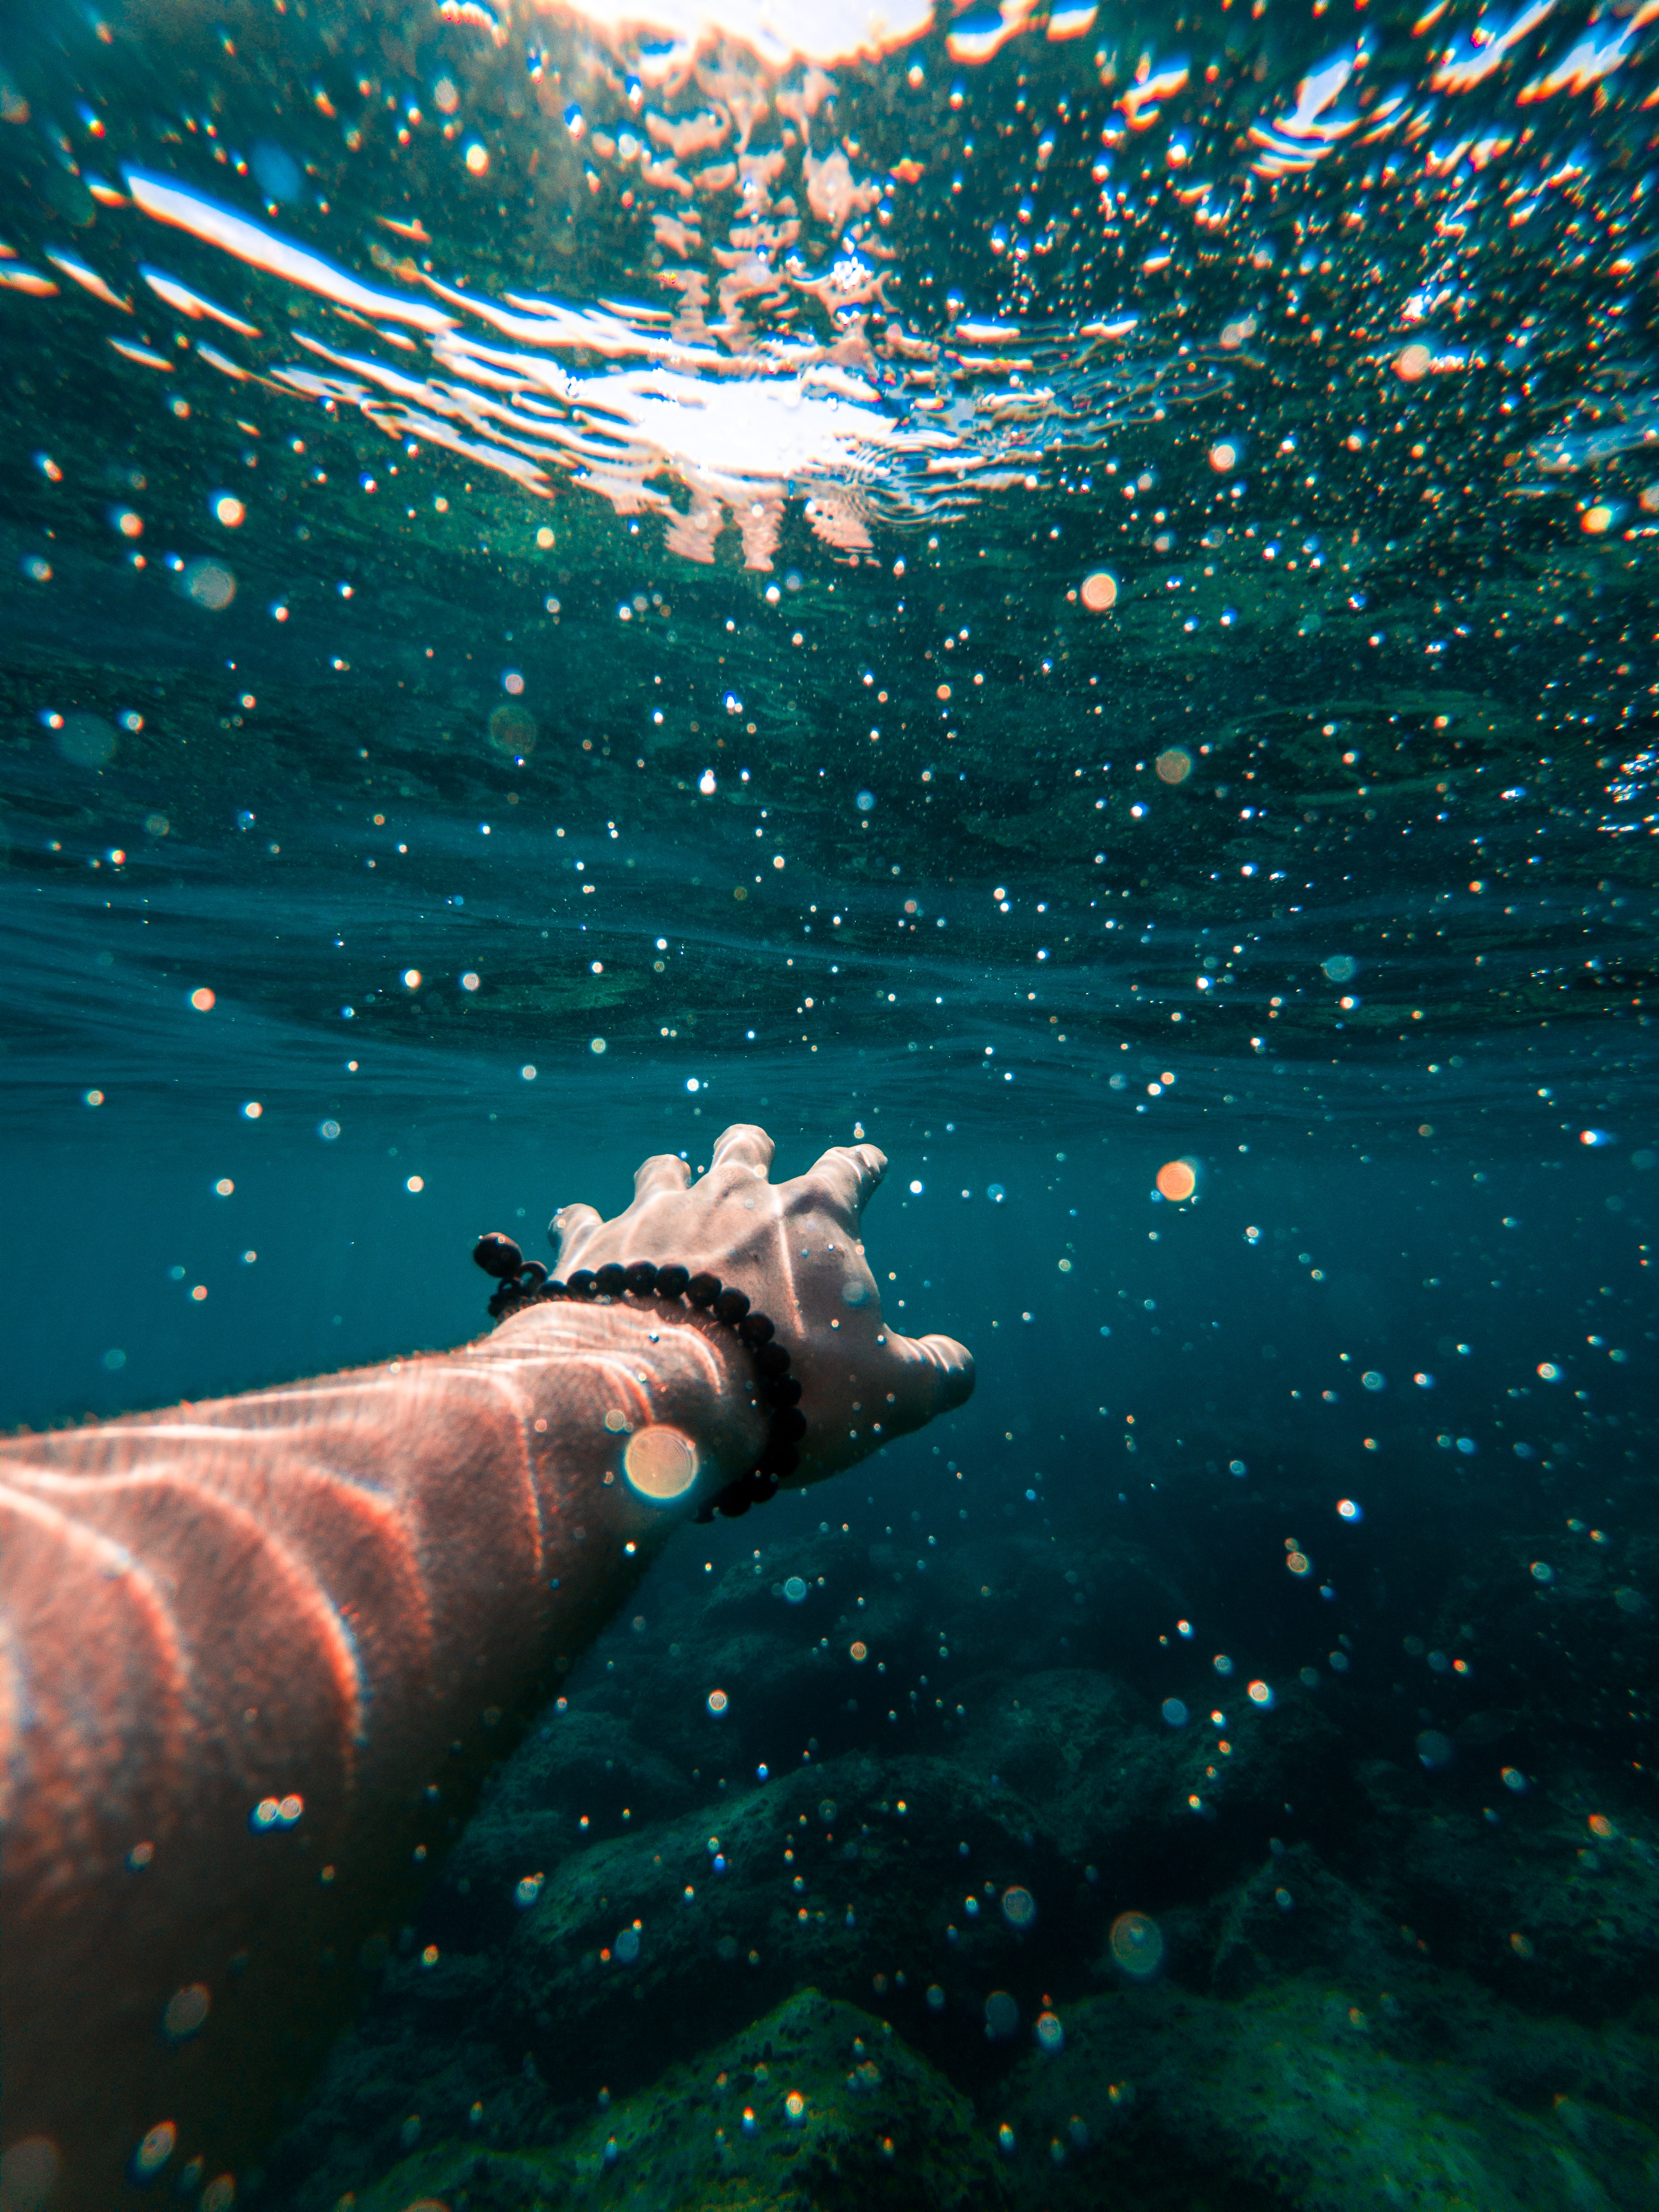 147978 download wallpaper Miscellanea, Miscellaneous, Hand, Water, Swimming, Underwater, Submarine screensavers and pictures for free